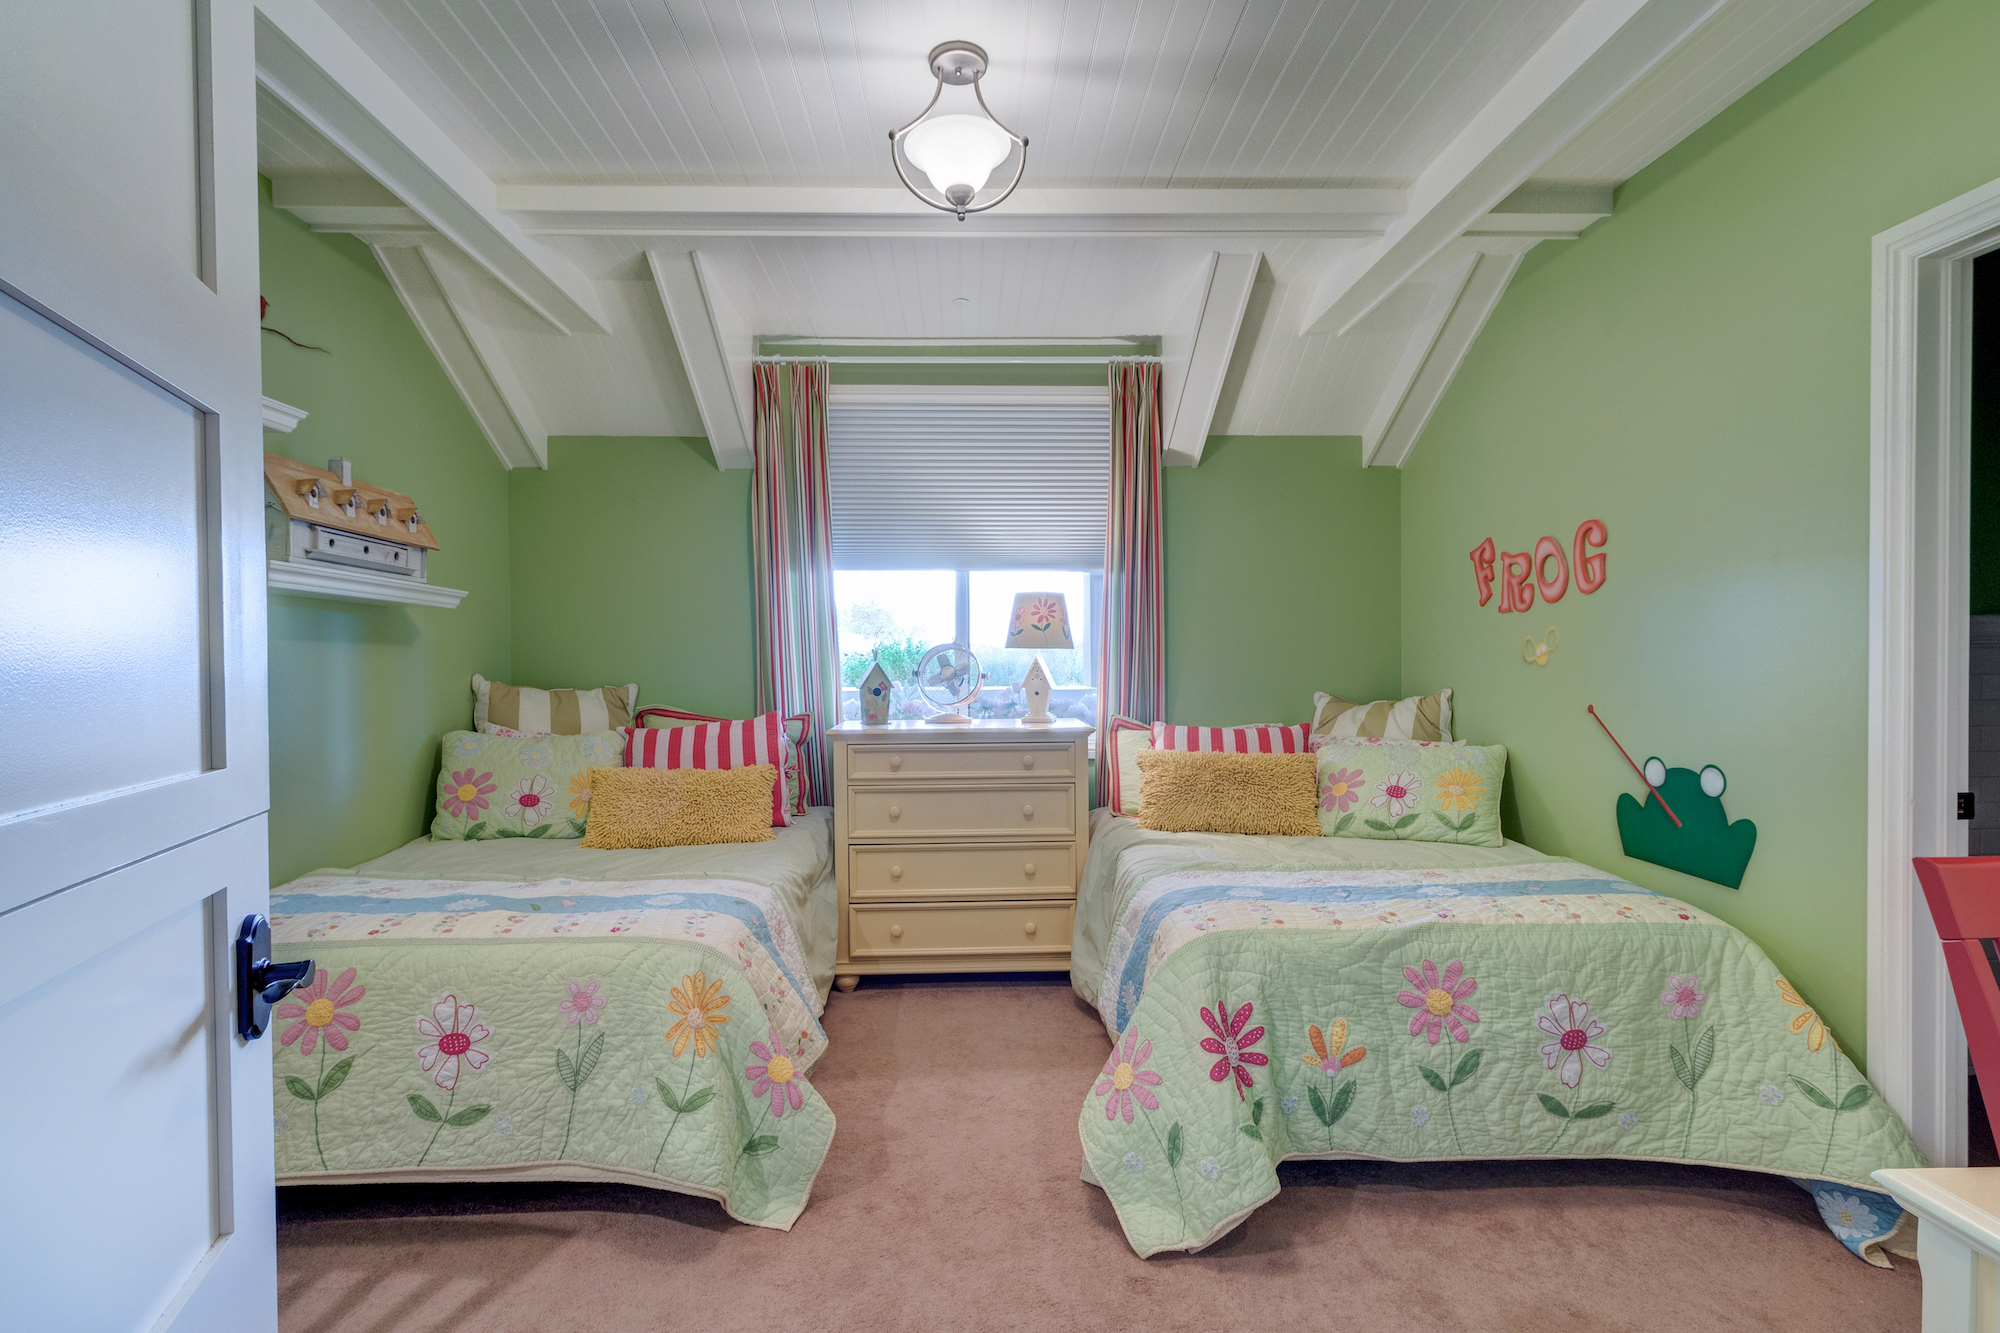 027-Guest room with wainscoted ceiling and adjoining bath.jpg